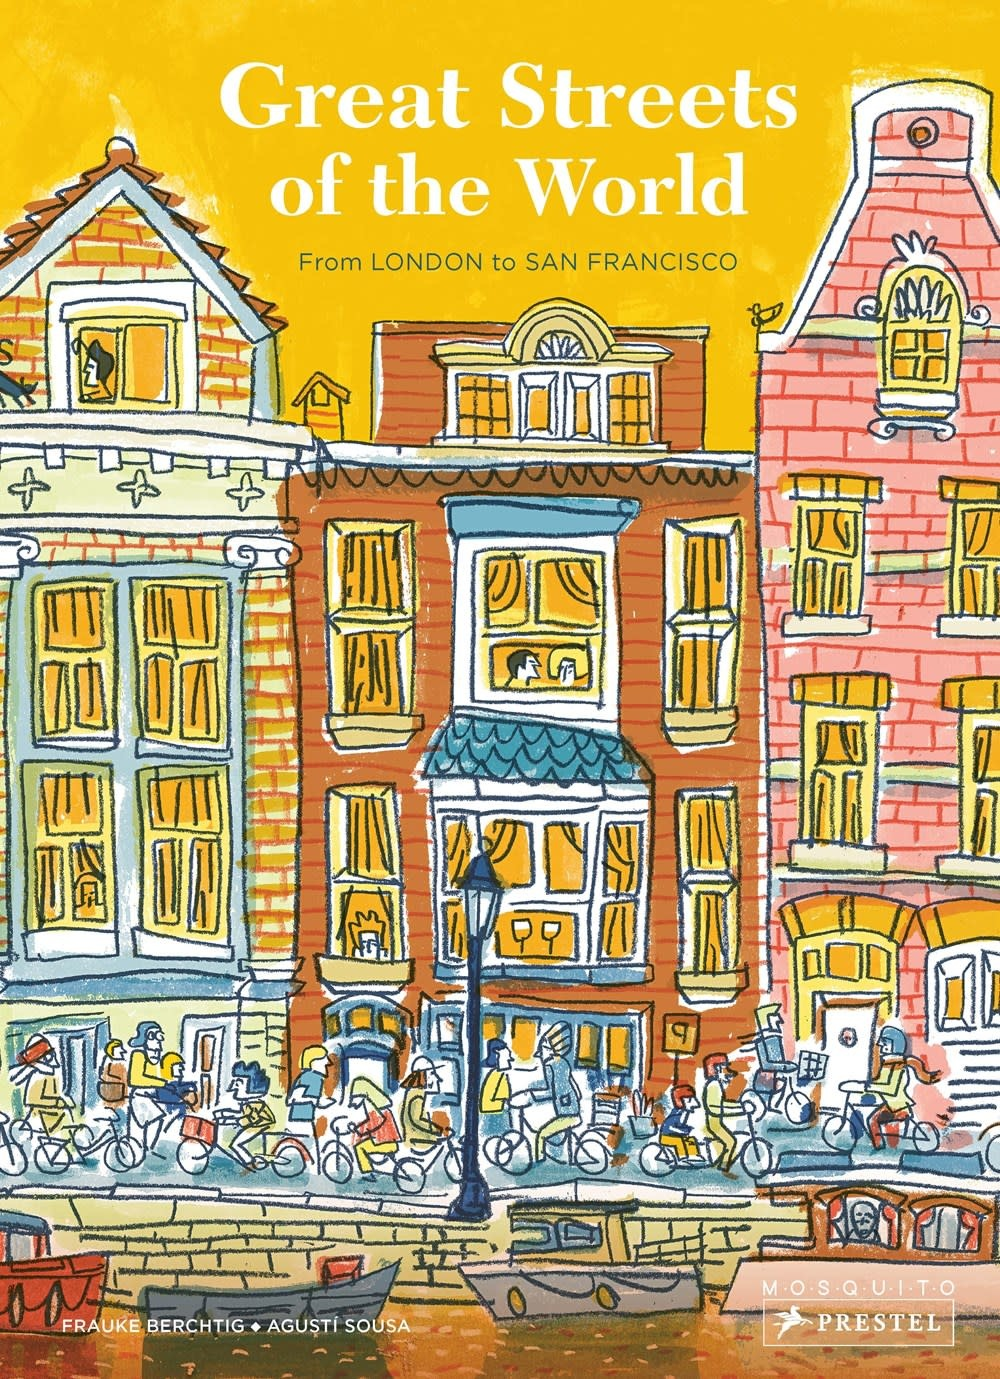 Prestel Junior Great Streets of the World: From London to San Francisco